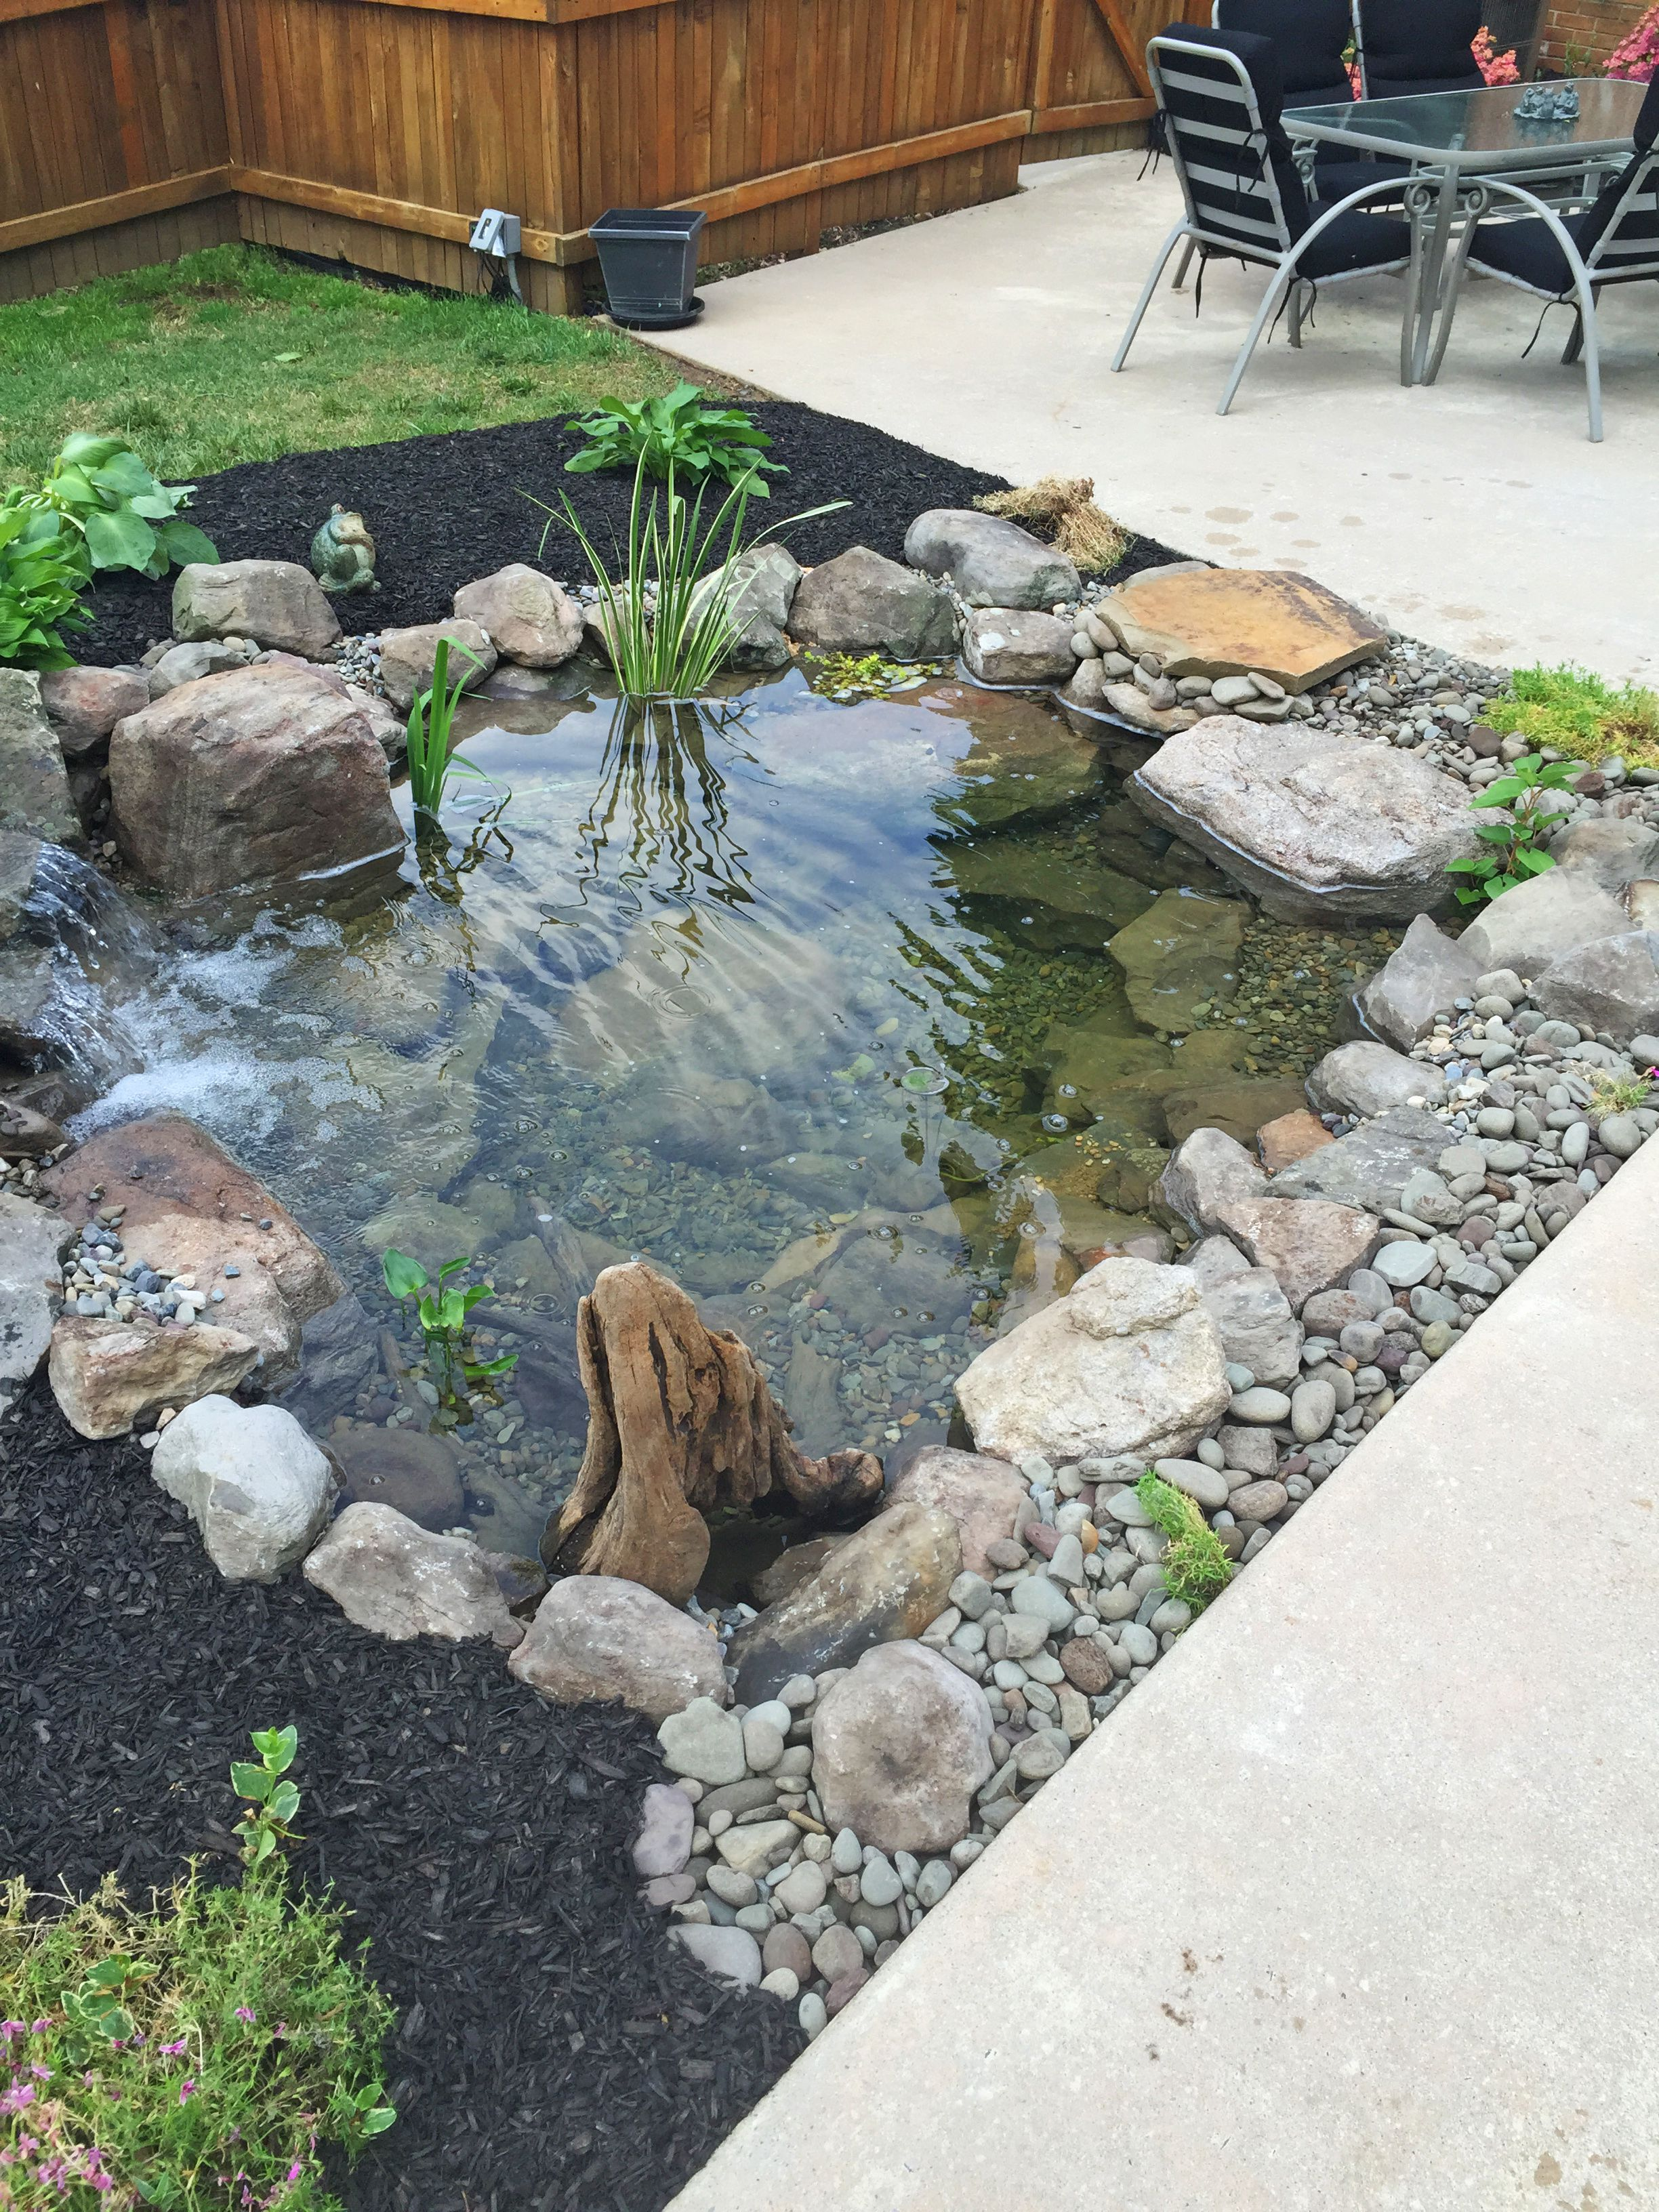 Backyard fish pond waterfall koi water garden waterscapes for Garden pond stones